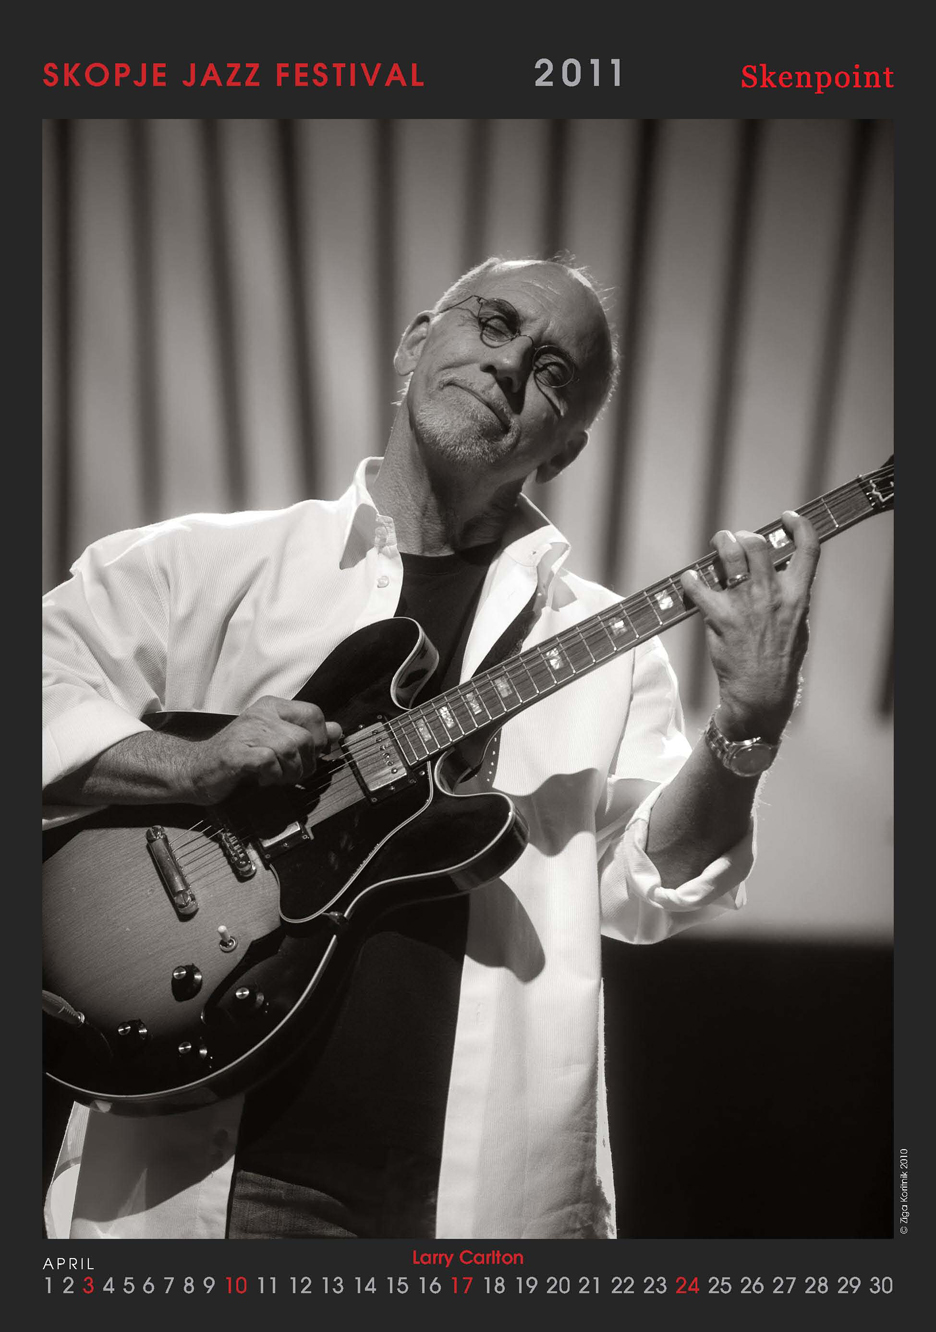 SJF 2011 / Larry Carlton